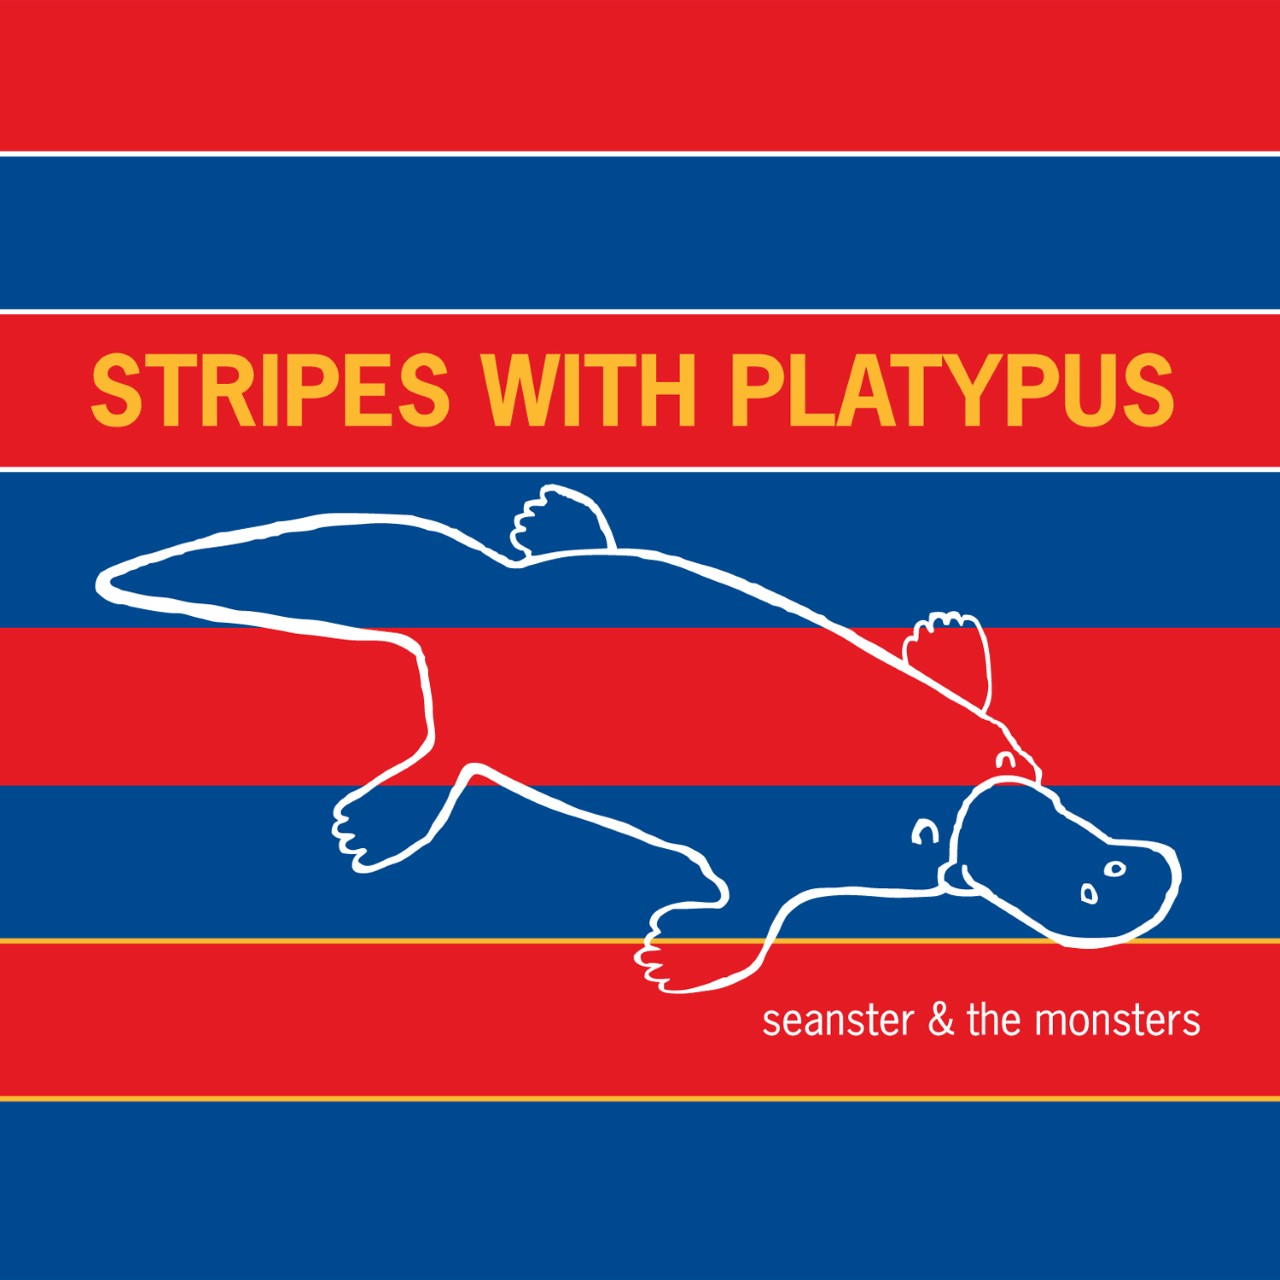 Stripes with Platypus by Seanster and the Monsters